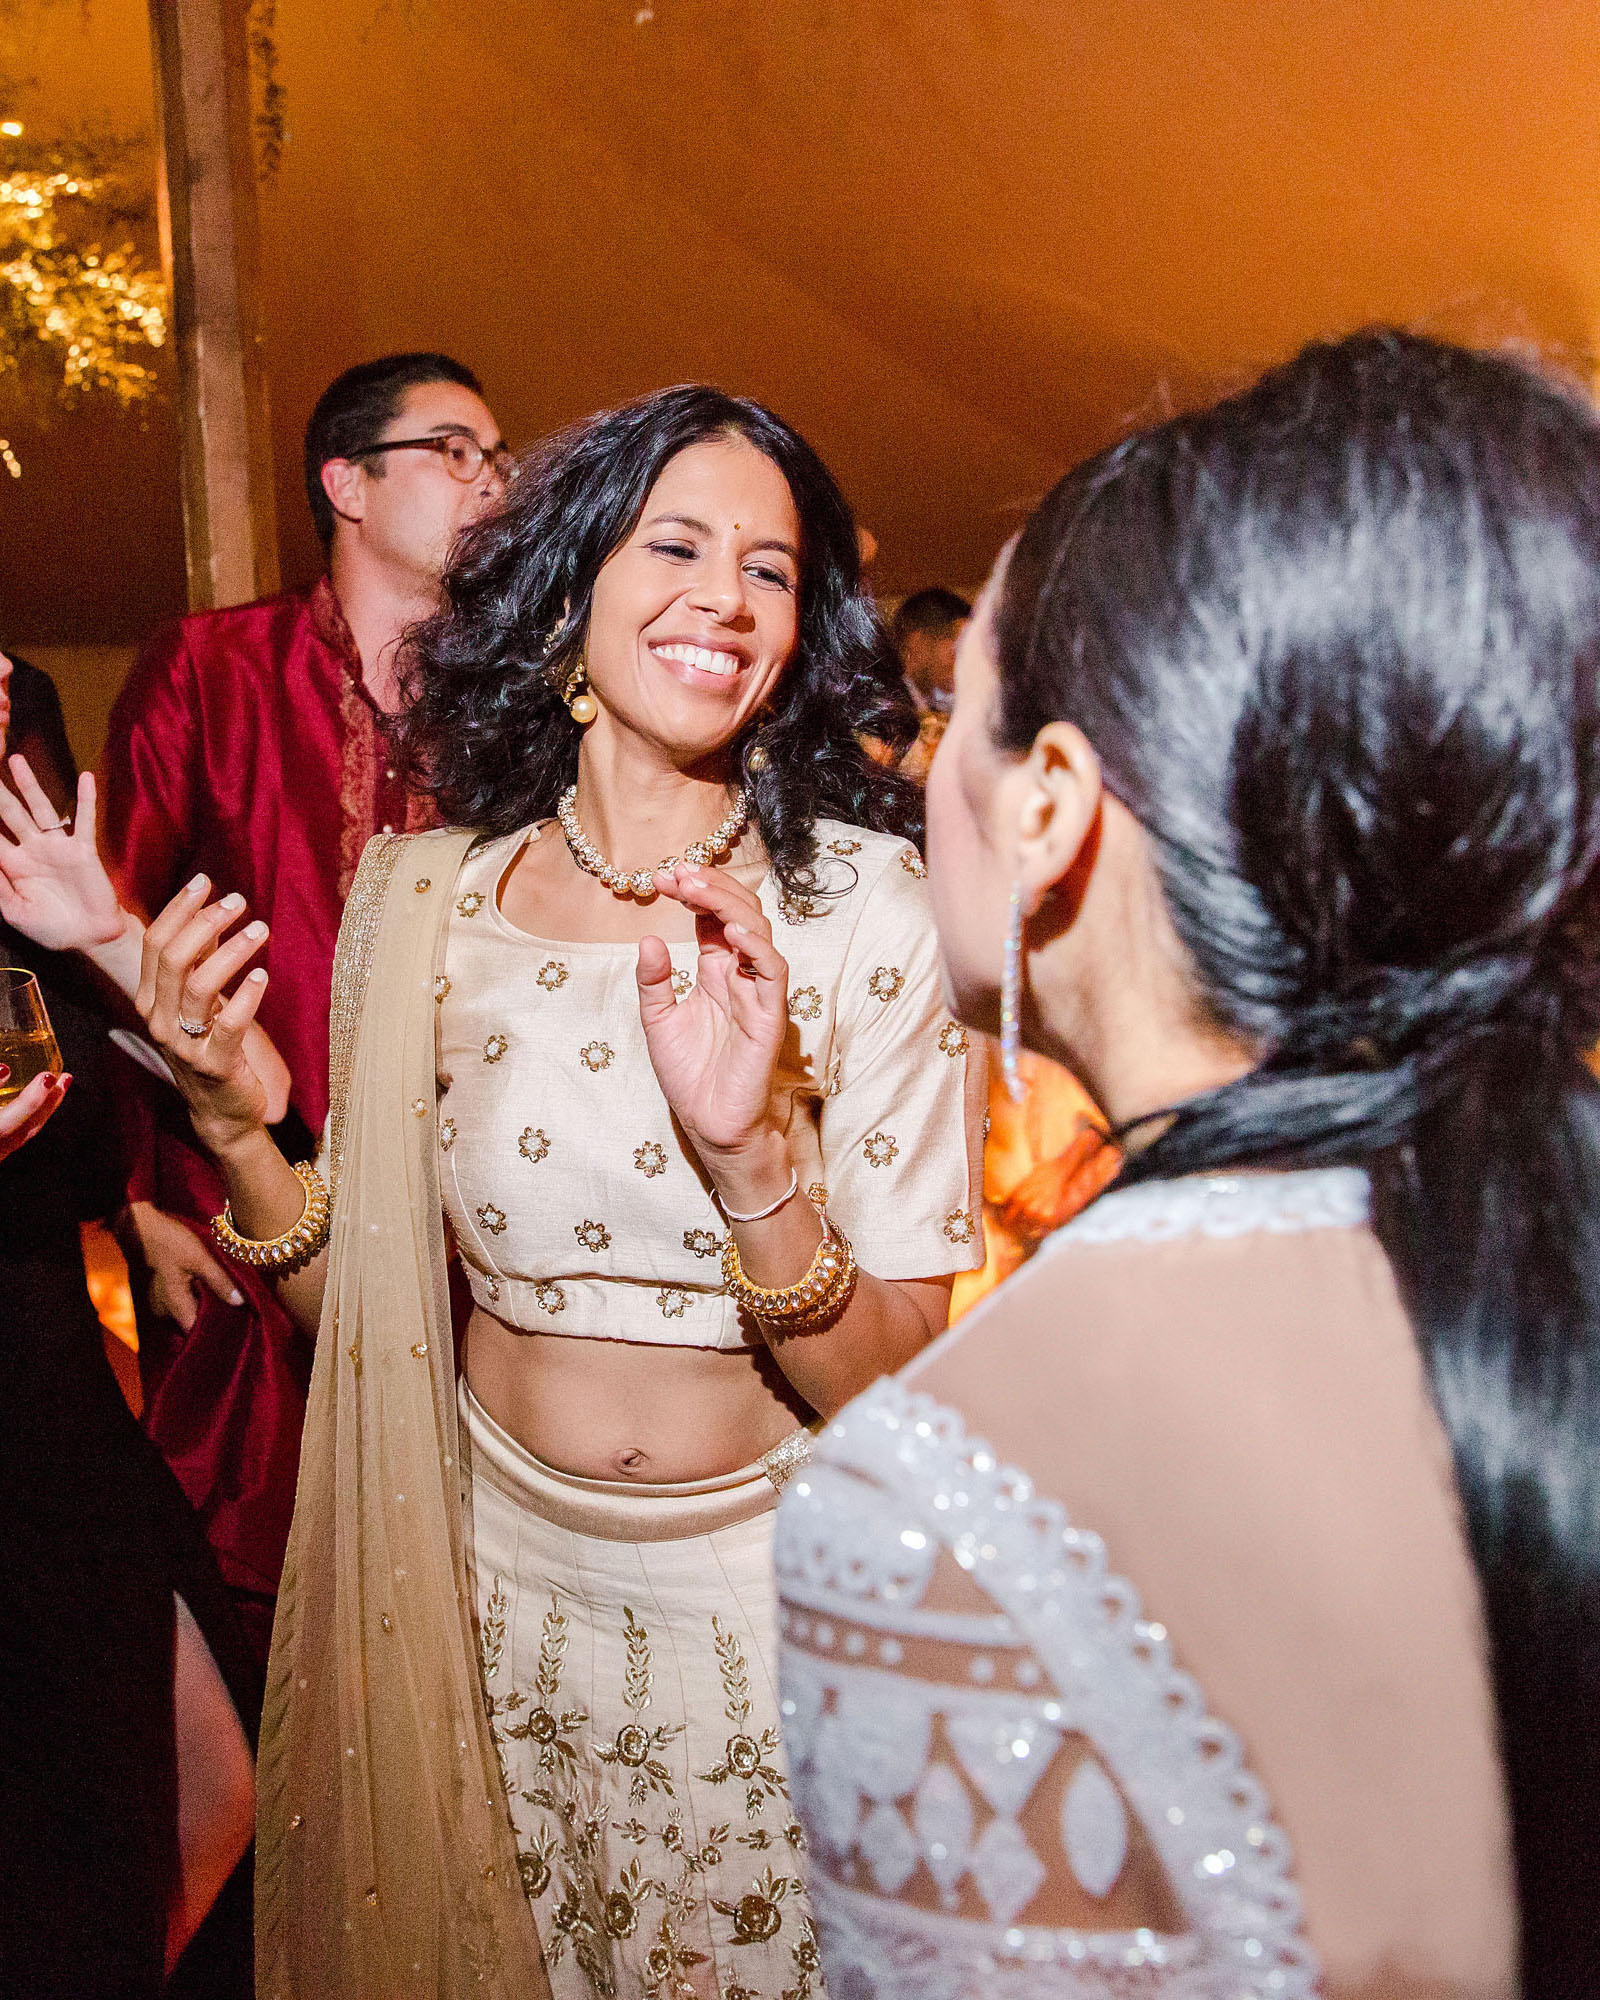 jenna alok wedding wine country california guests dance floor